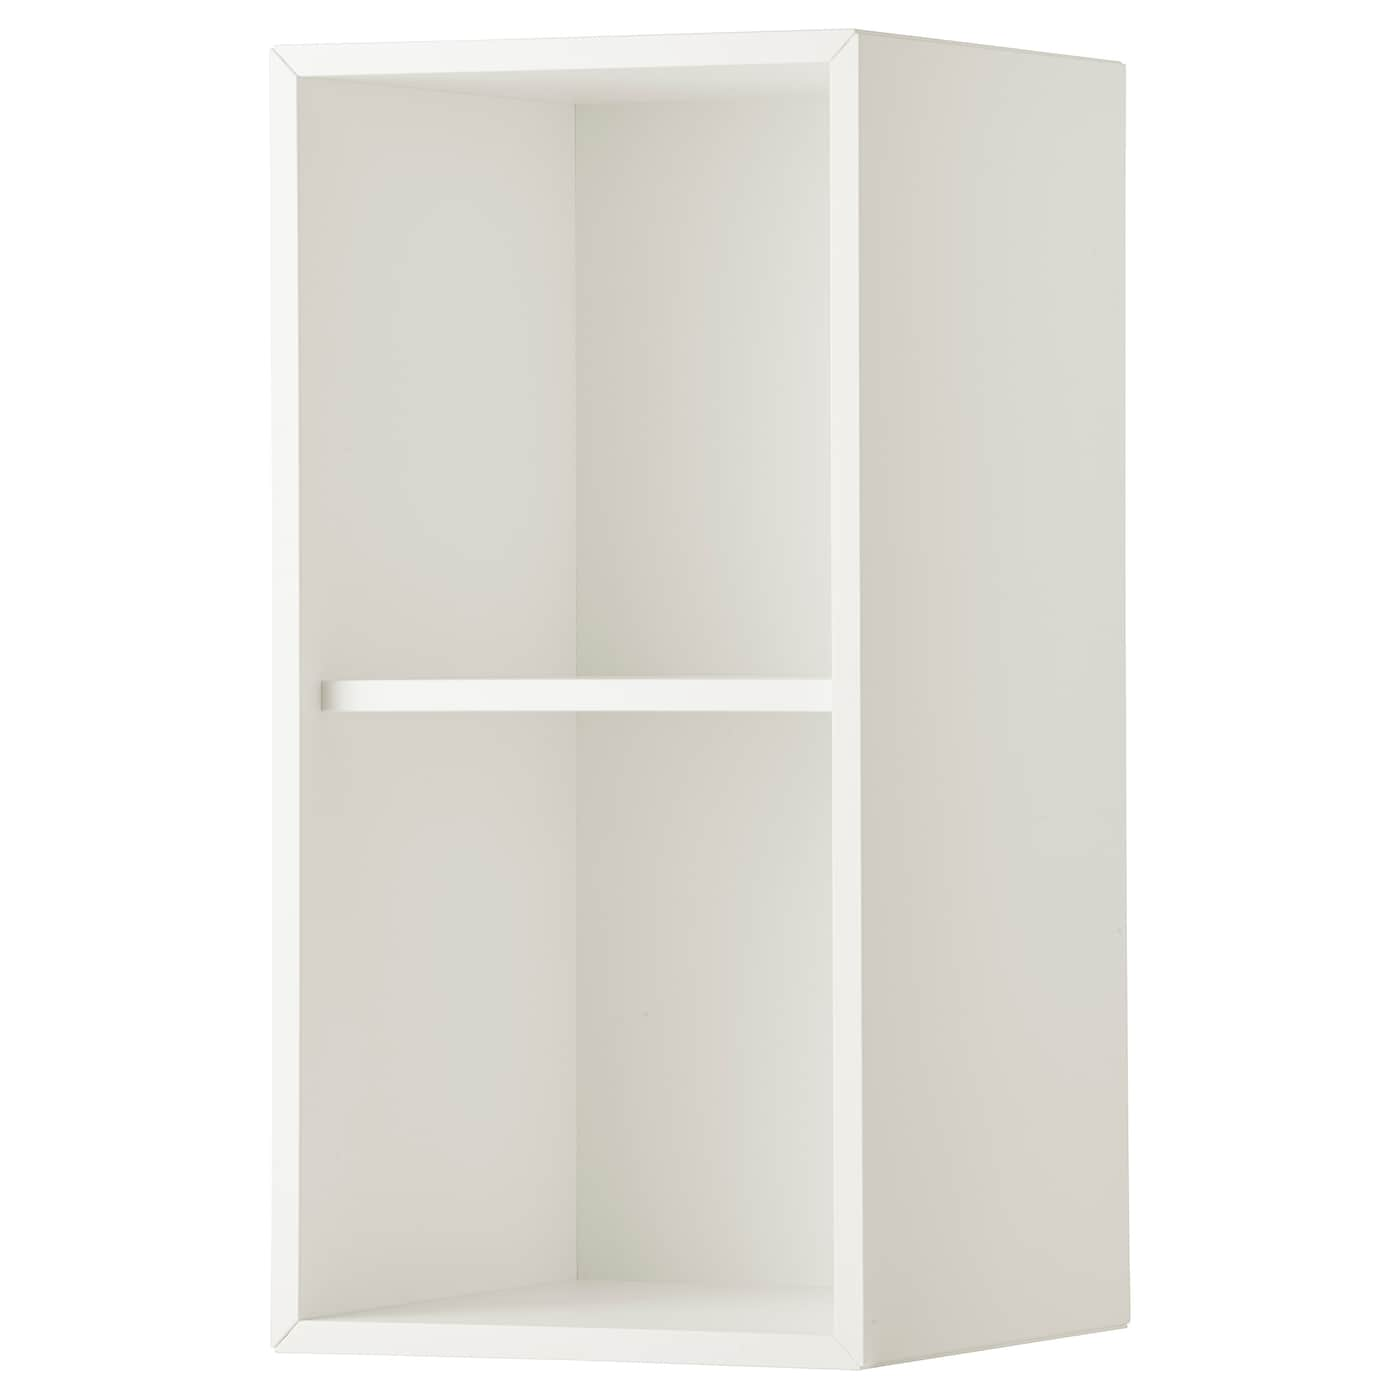 eket cabinet with 2 compartments white 35 x 35 x 70 cm ikea. Black Bedroom Furniture Sets. Home Design Ideas